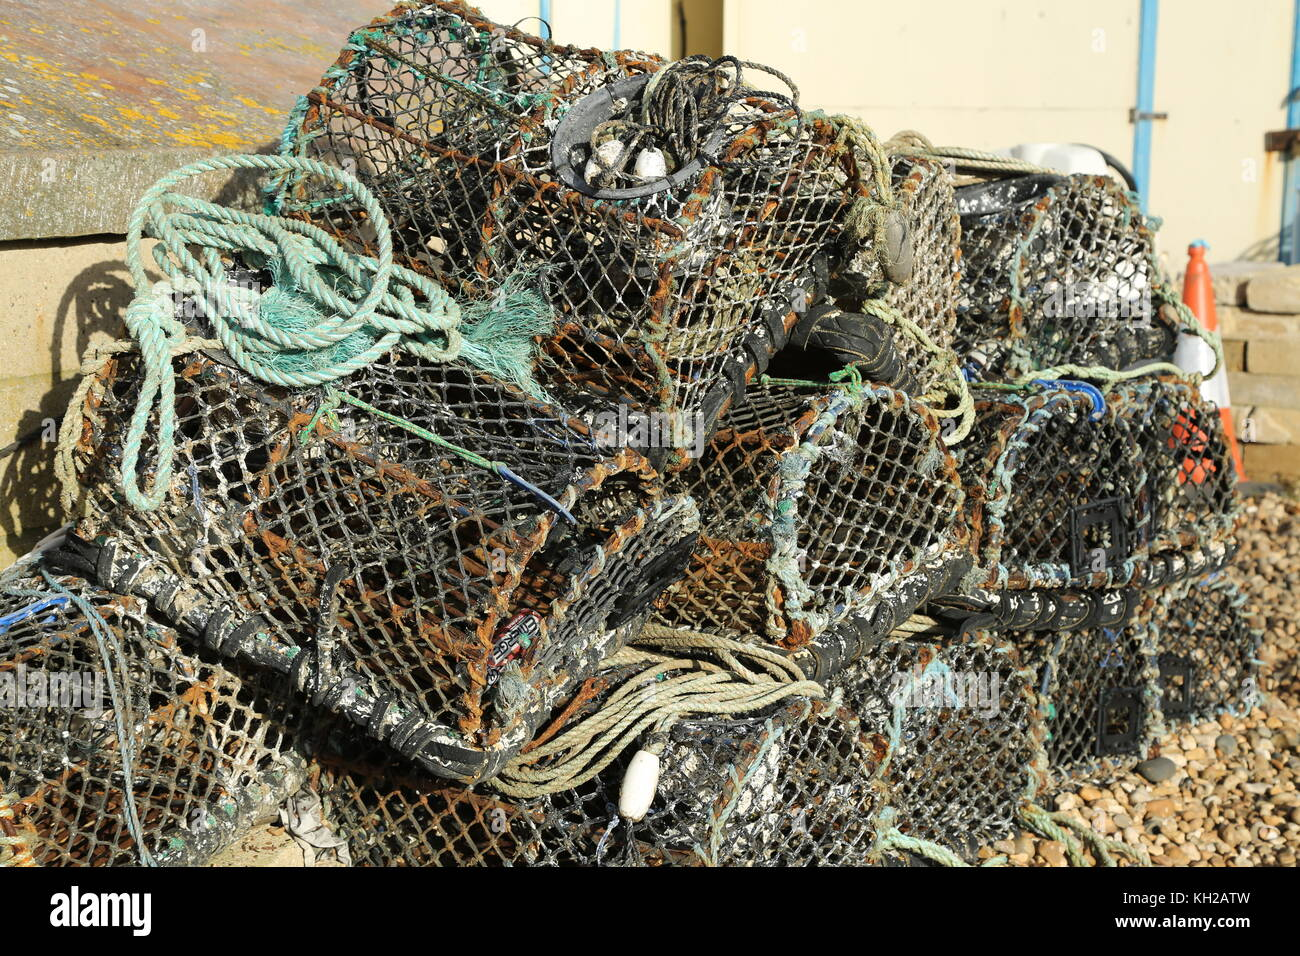 Fishermen's lobster pots stacked on the shingle beach in Bognor Regis, West Sussex, UK. Used by fishermen to - Stock Image